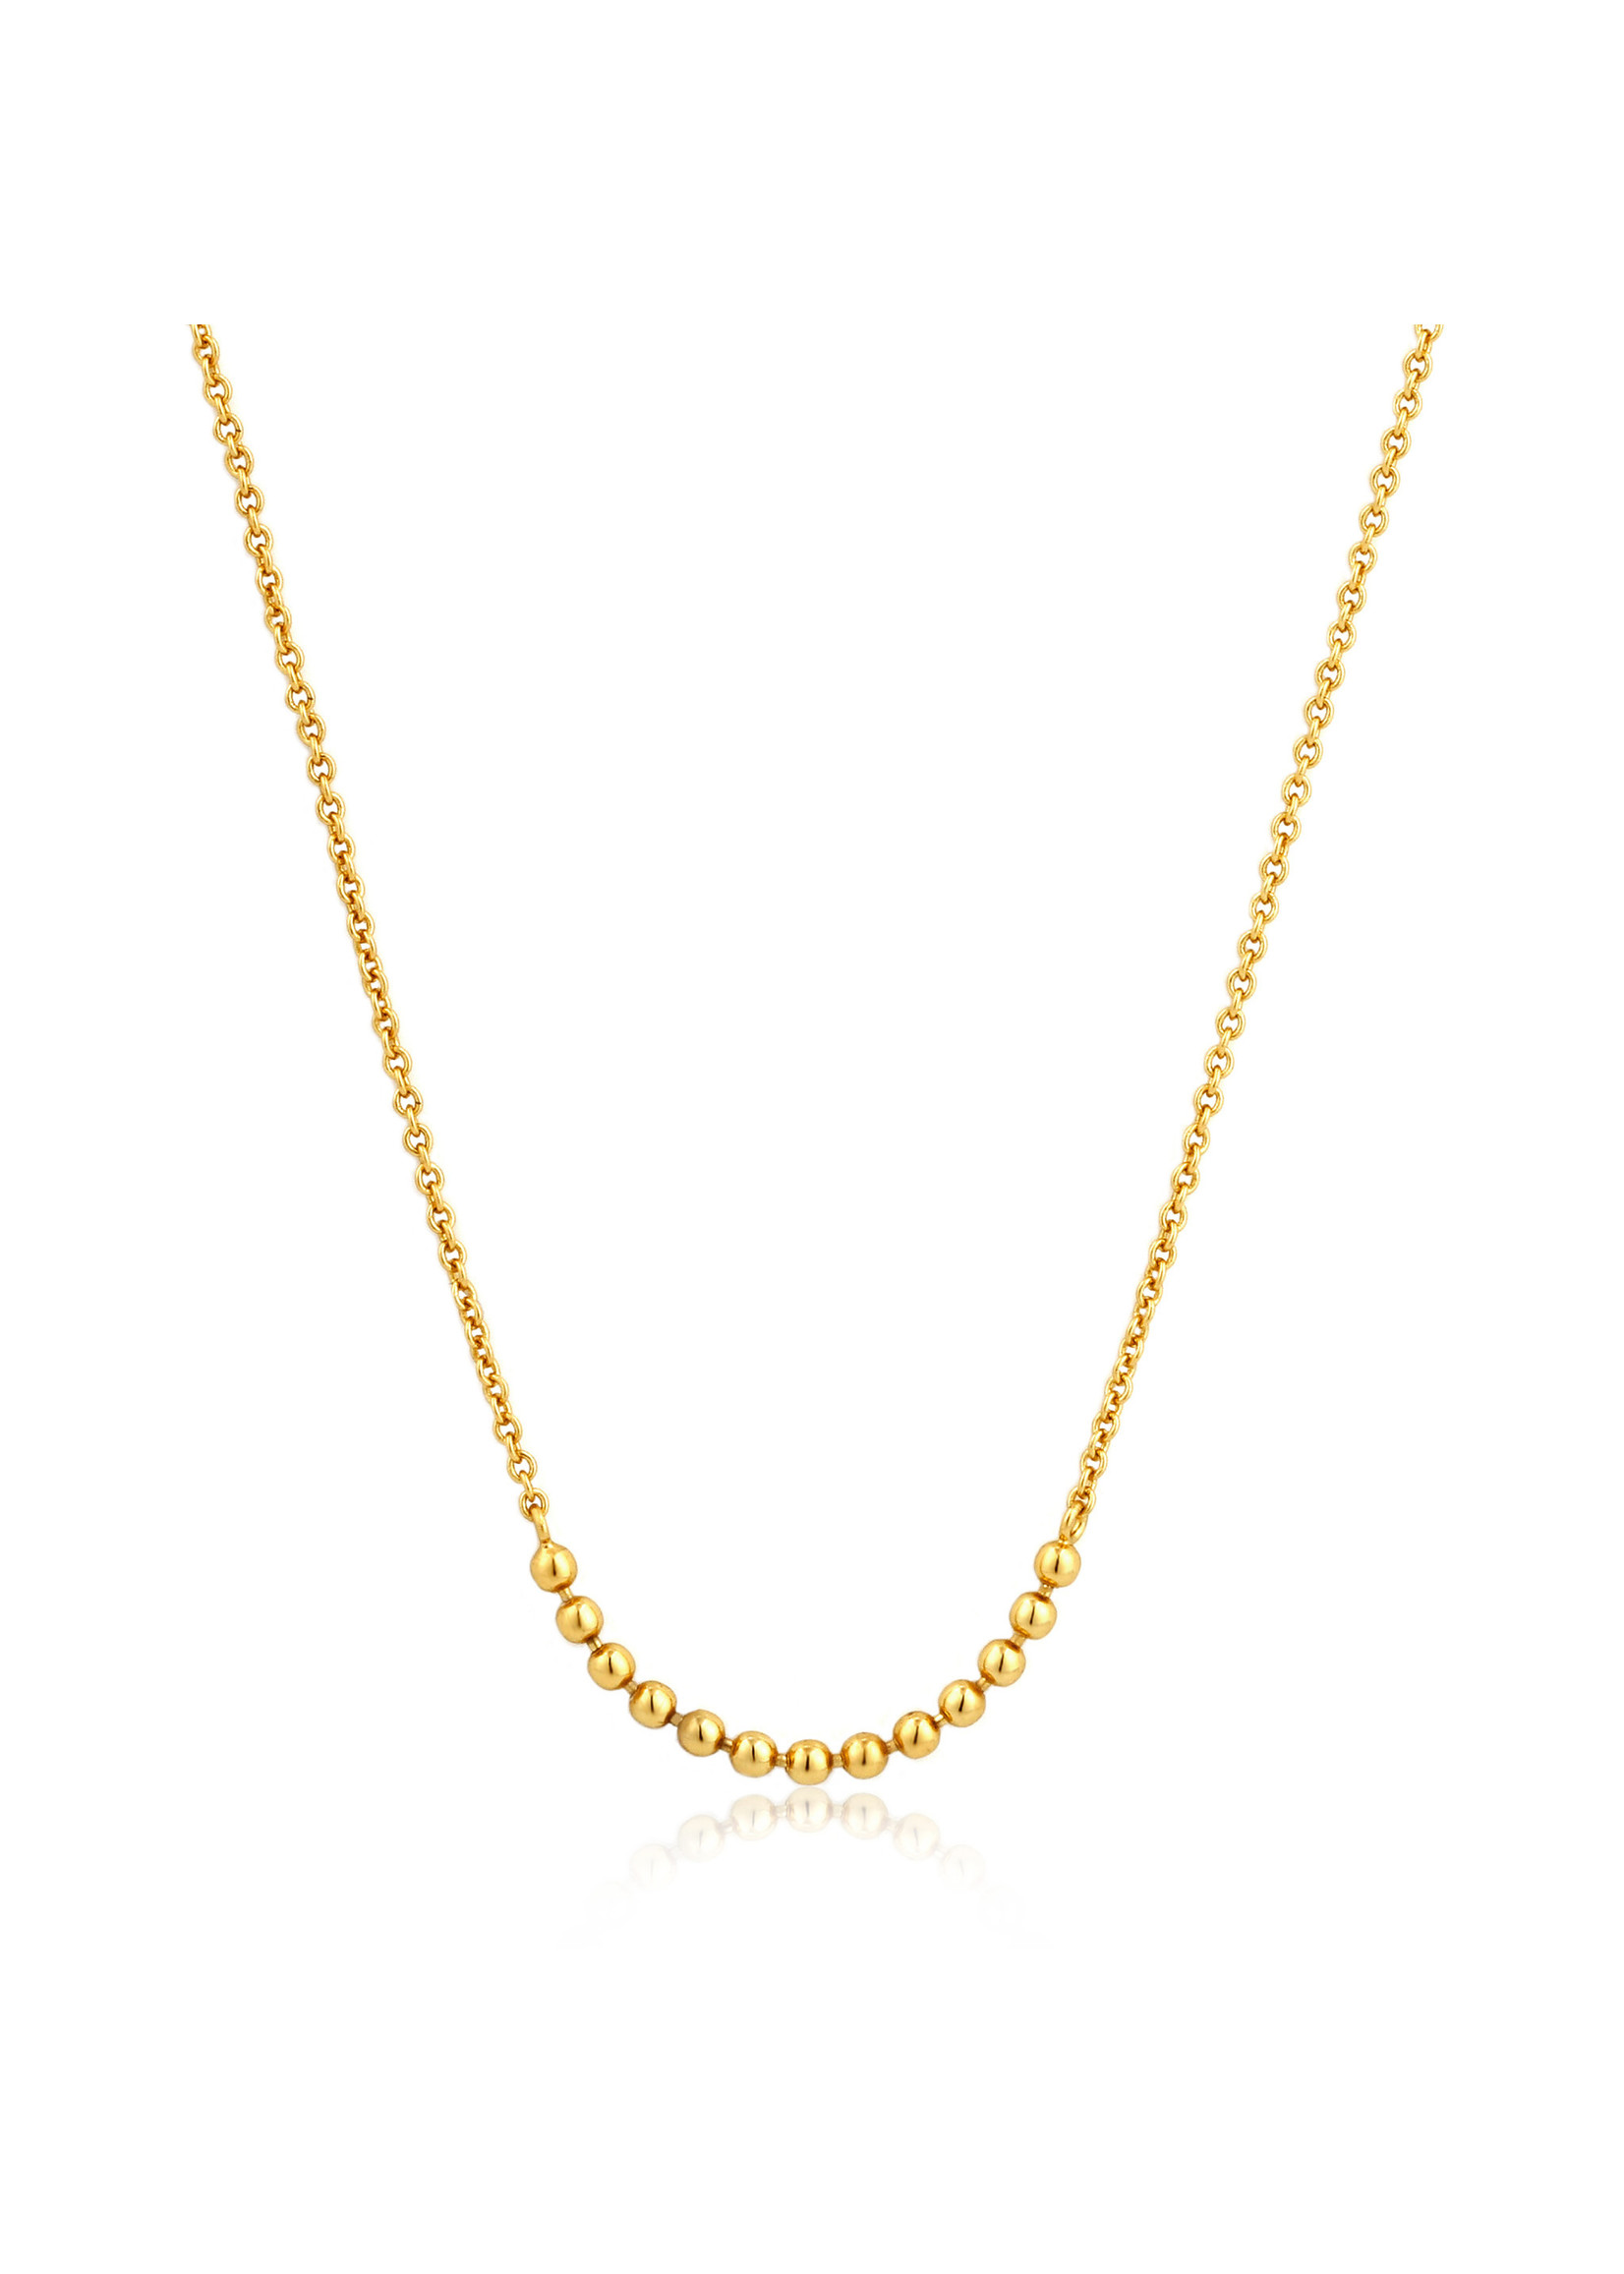 Ania Haie GOLD MODERN MULTIPLE BALLS NECKLACE